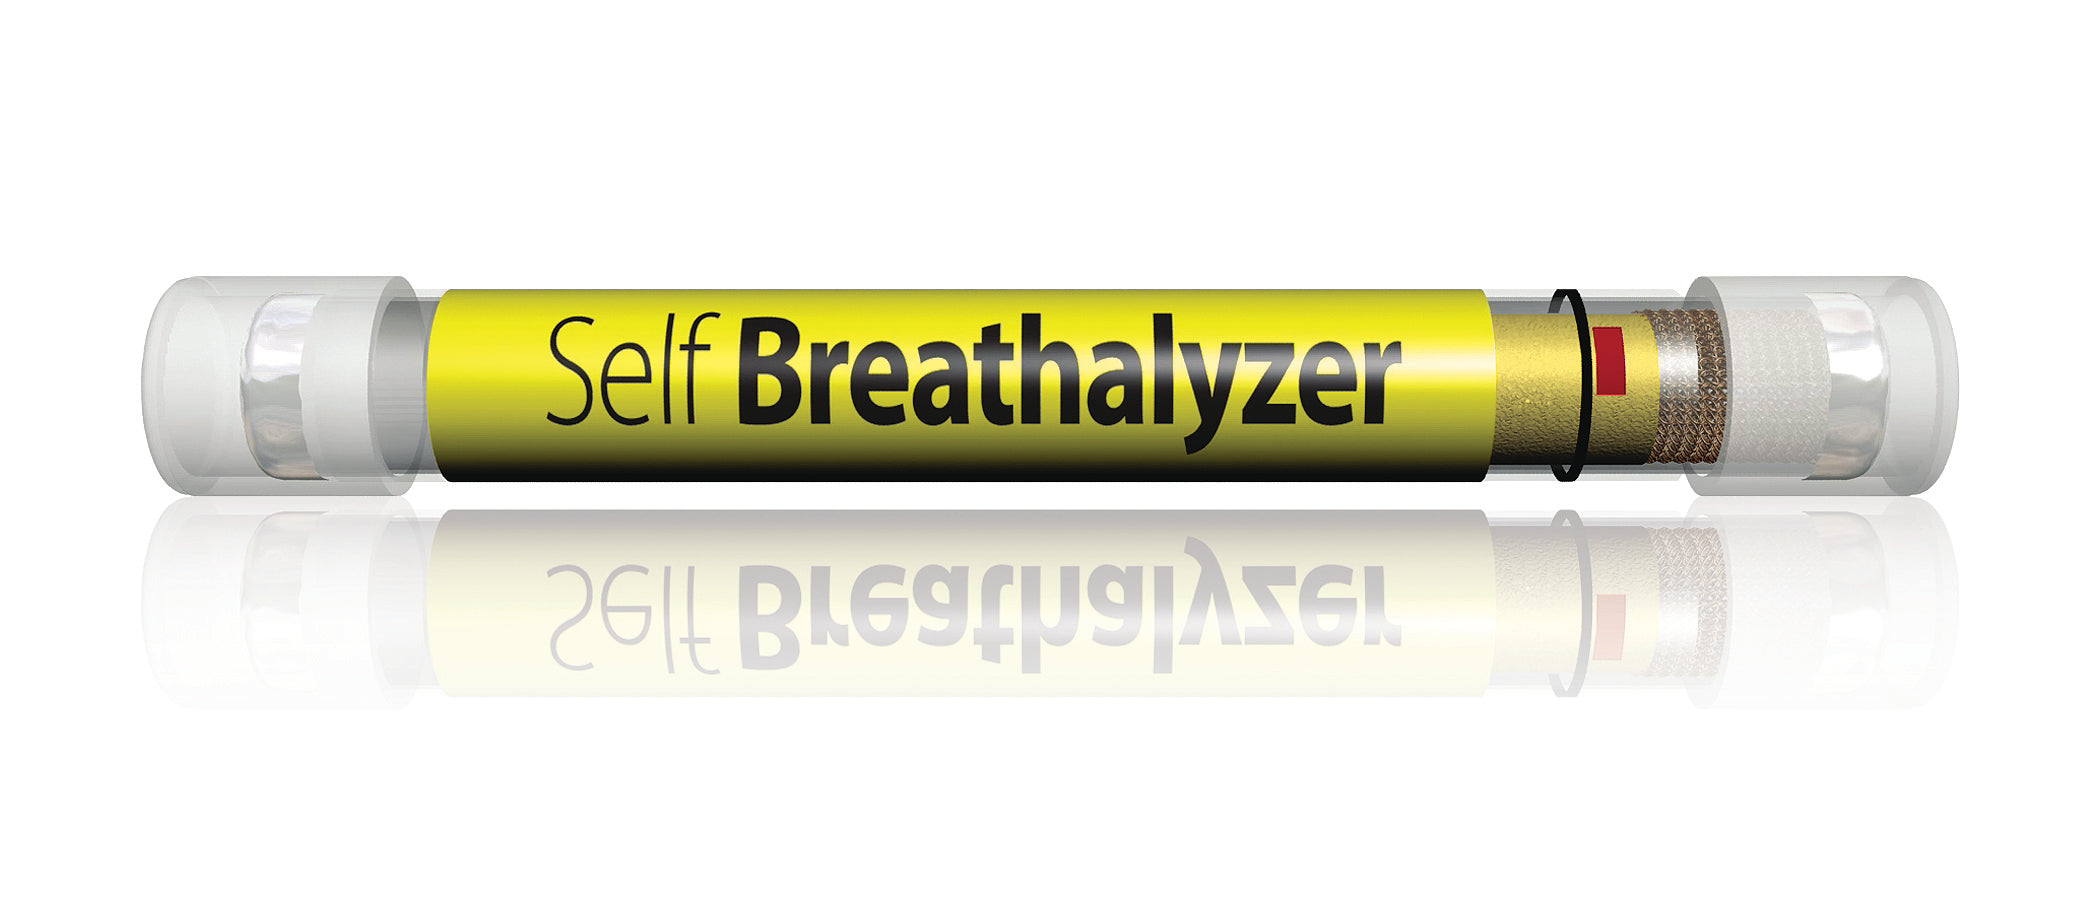 How To Use the Self Breathalyzer